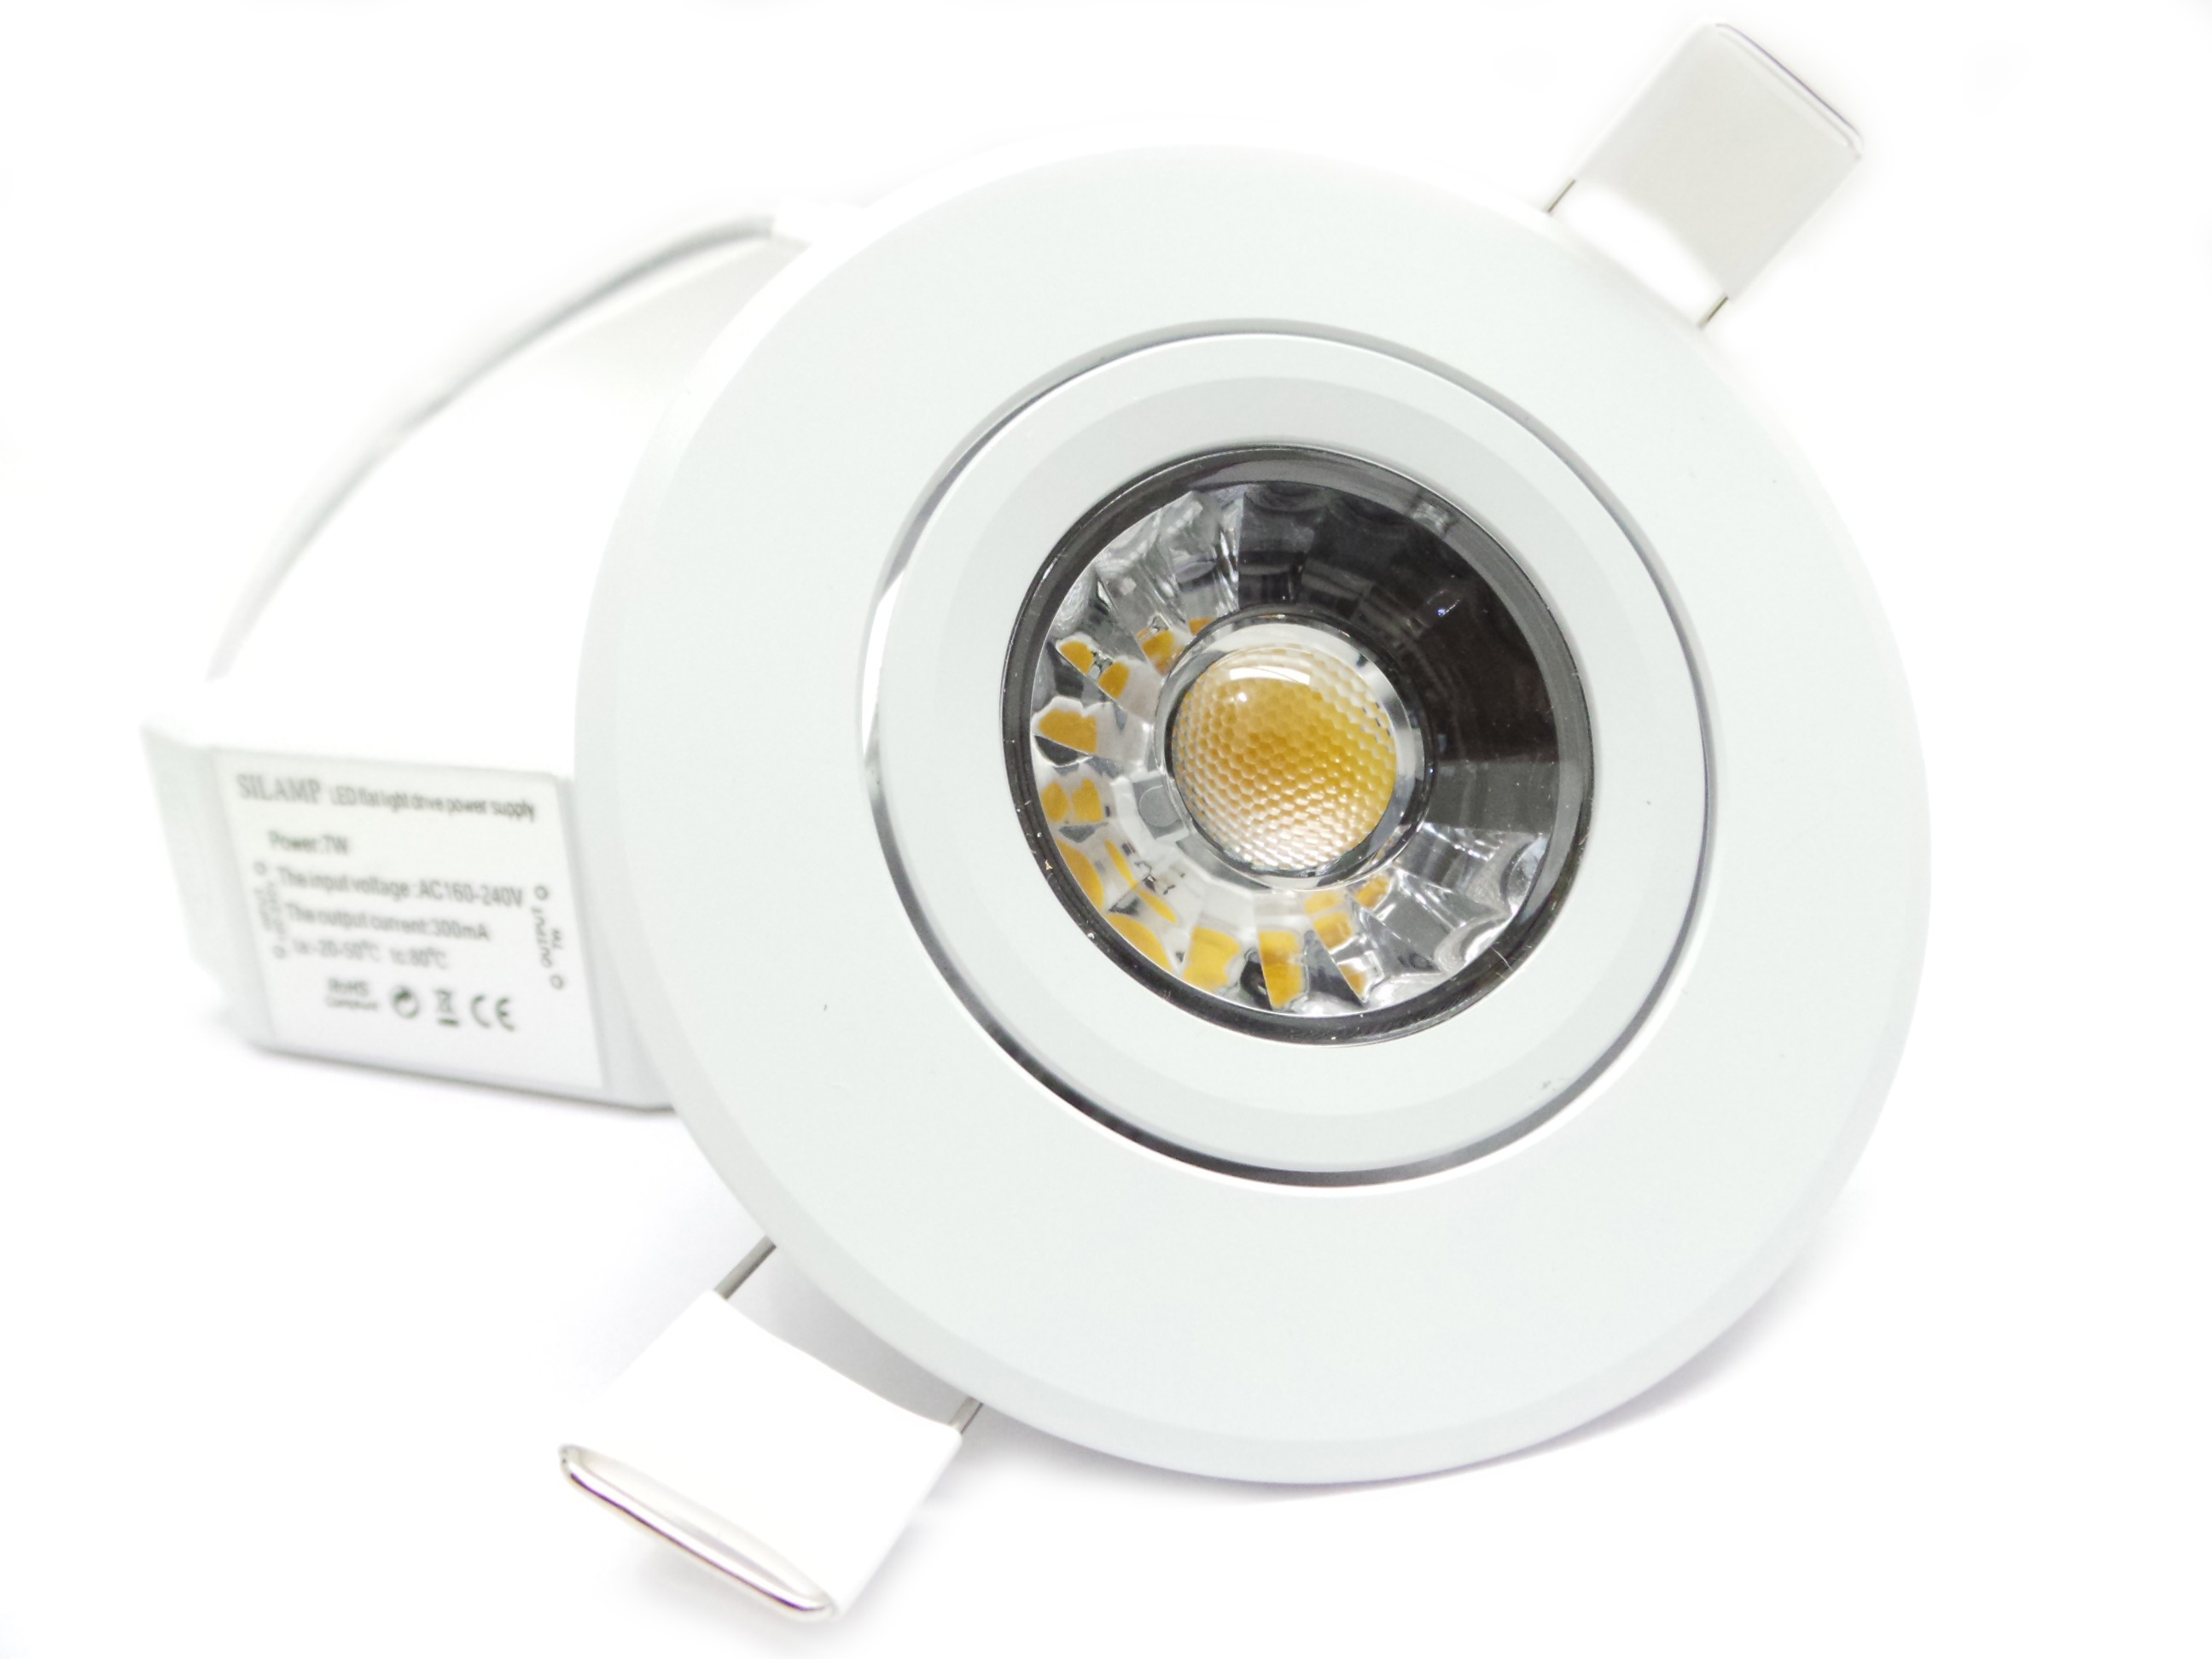 F12 7w faretti e fari led faretto led incasso for Led controsoffitto